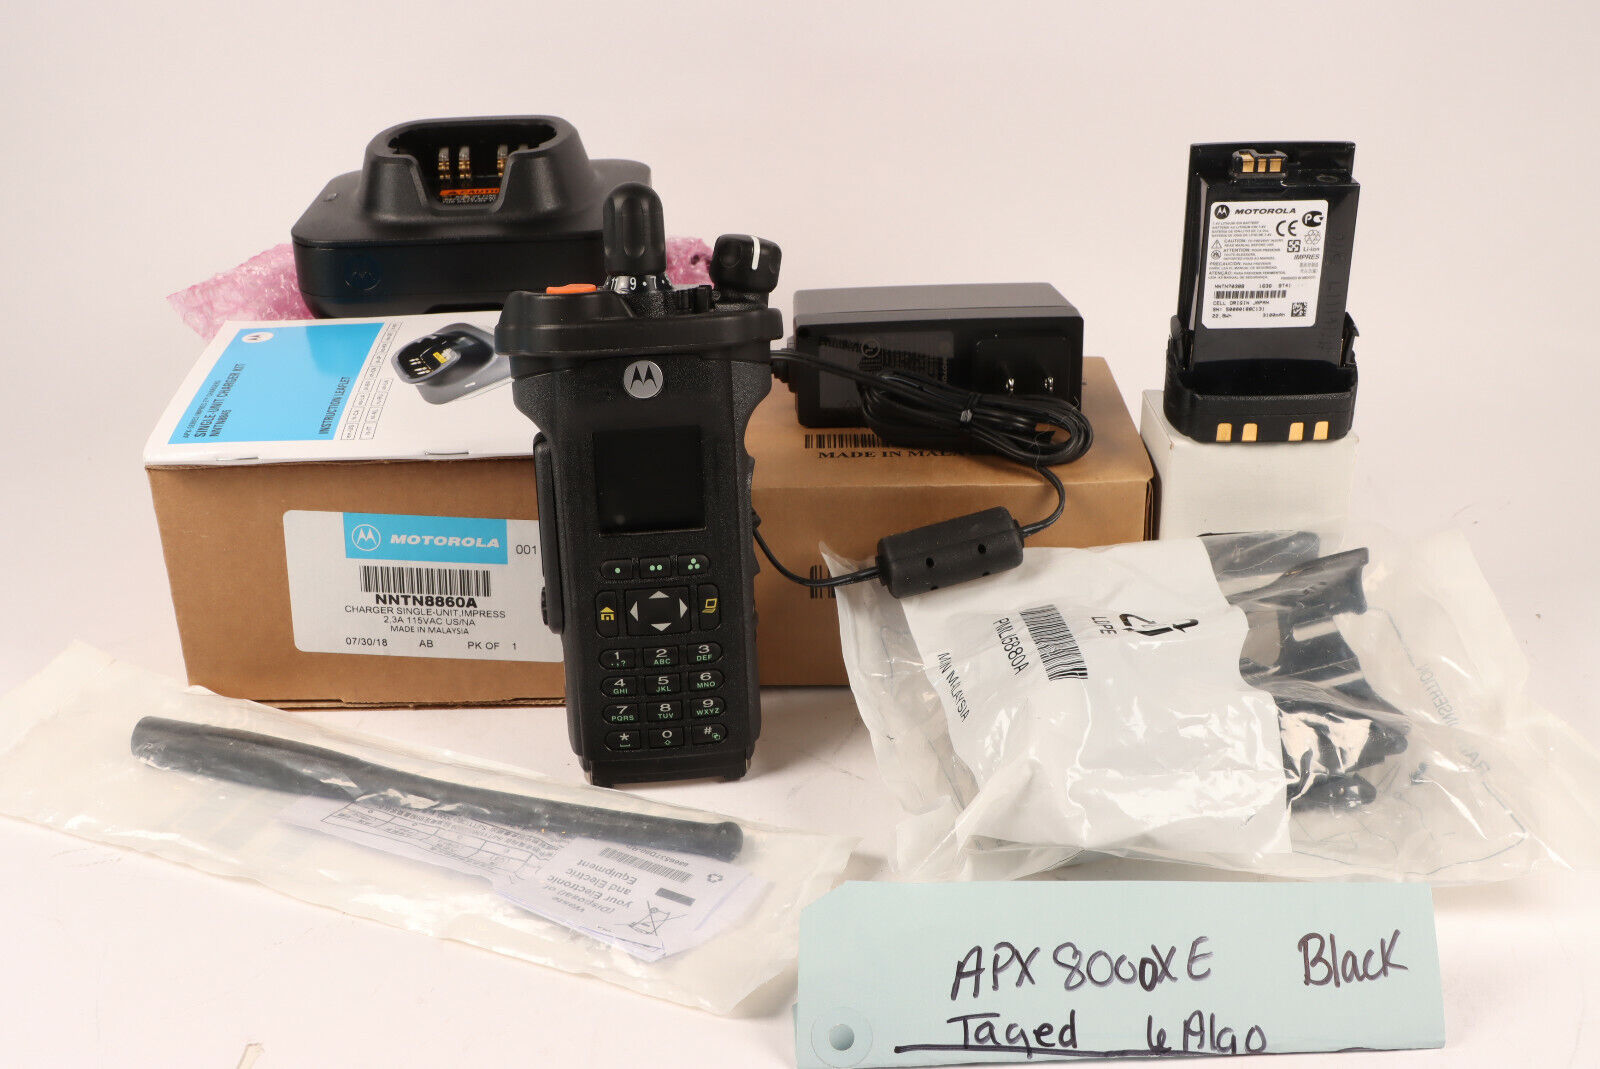 Motorola APX8000XE All Band FPP6 Algo's w/ antenna charger & battery *w/ Tags. Buy it now for 4950.00